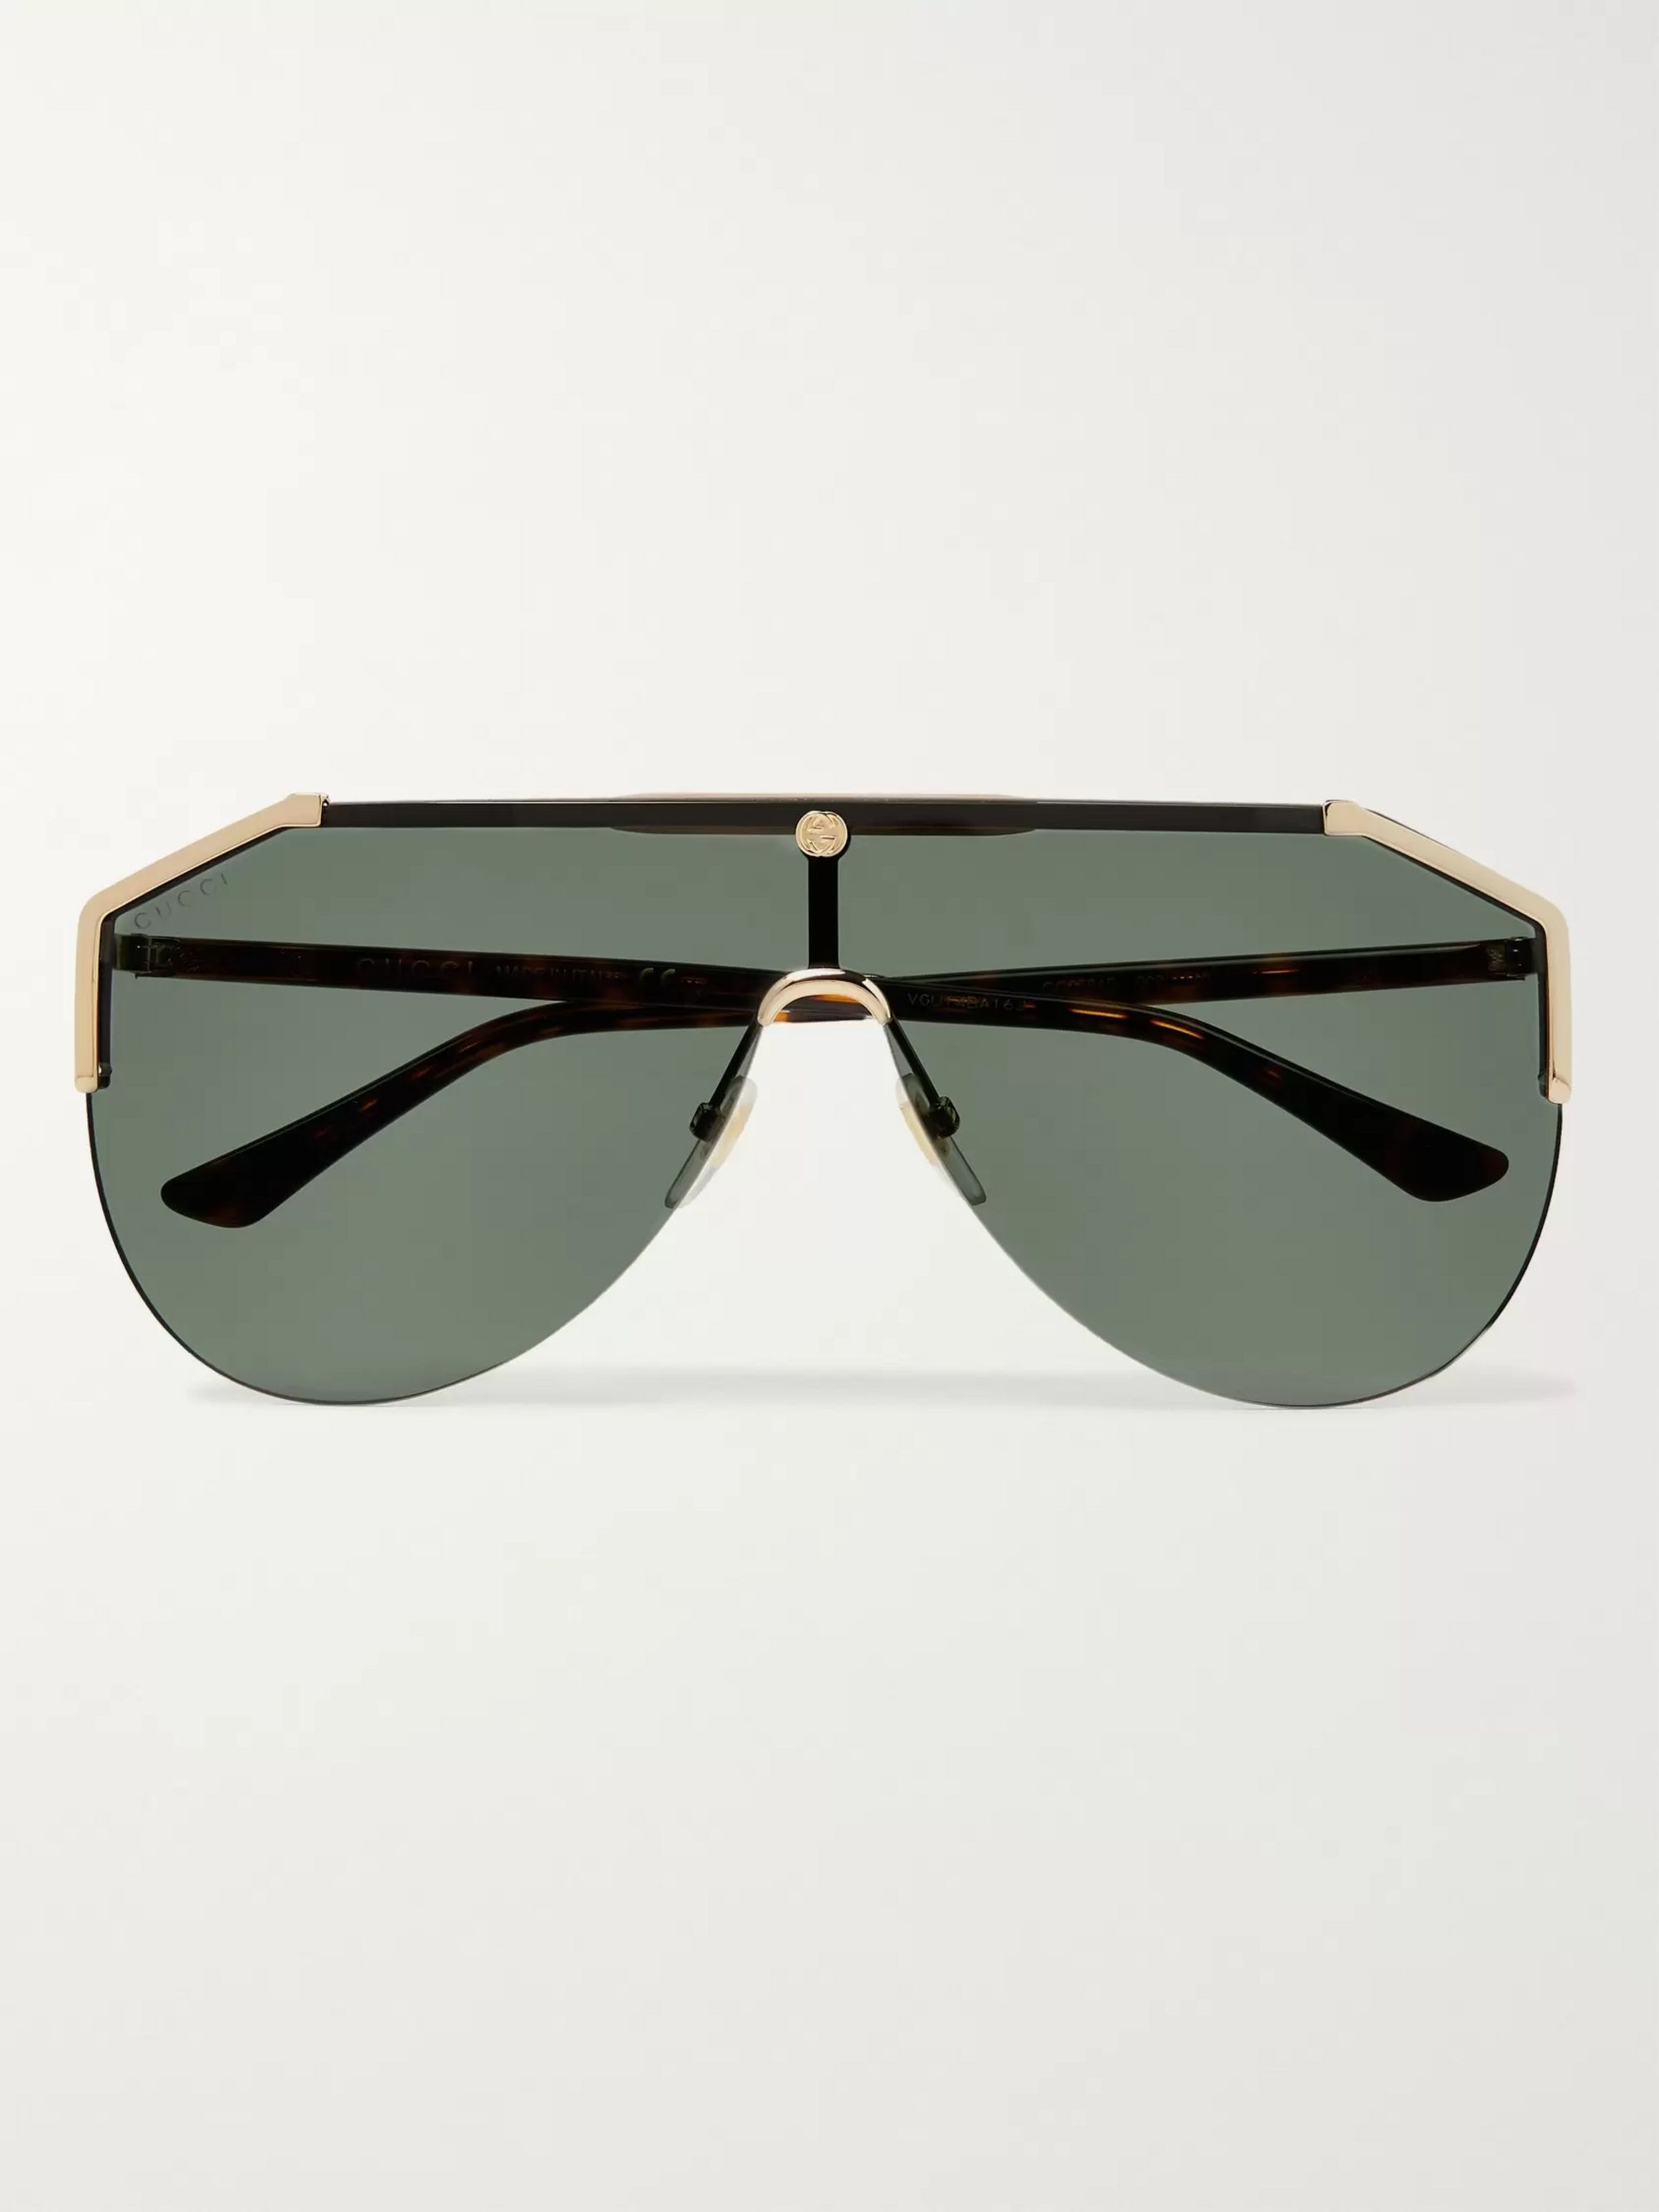 Gucci Aviator-Style Gold-Tone and Tortoiseshell Acetate Sunglasses